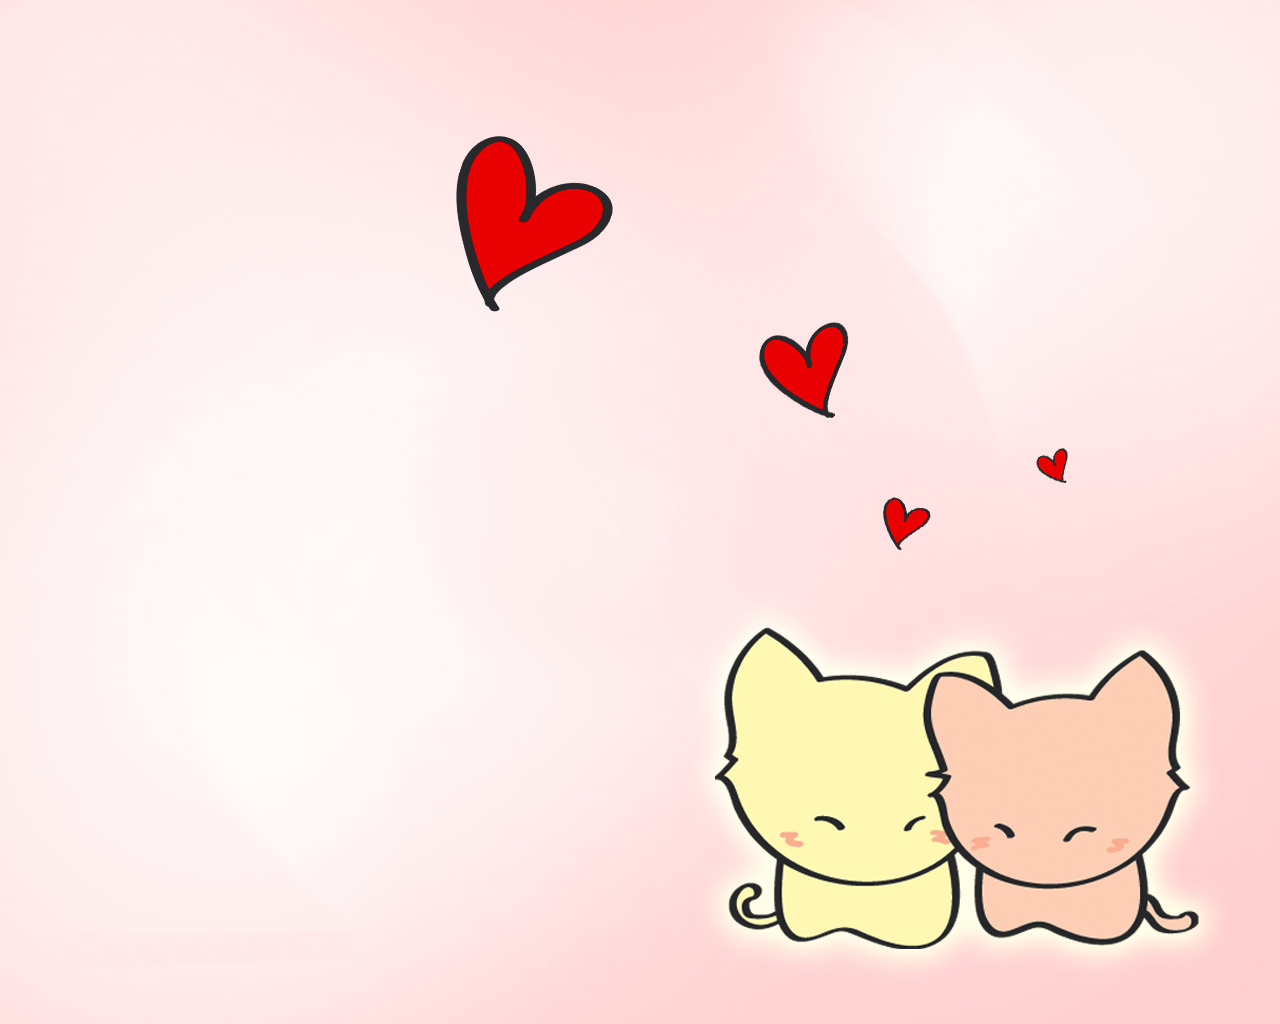 Love cute Heart Wallpaper : tumblr anime wallpaper - Google Search Desktop Wallpaper Pinterest cat love, Love heart ...